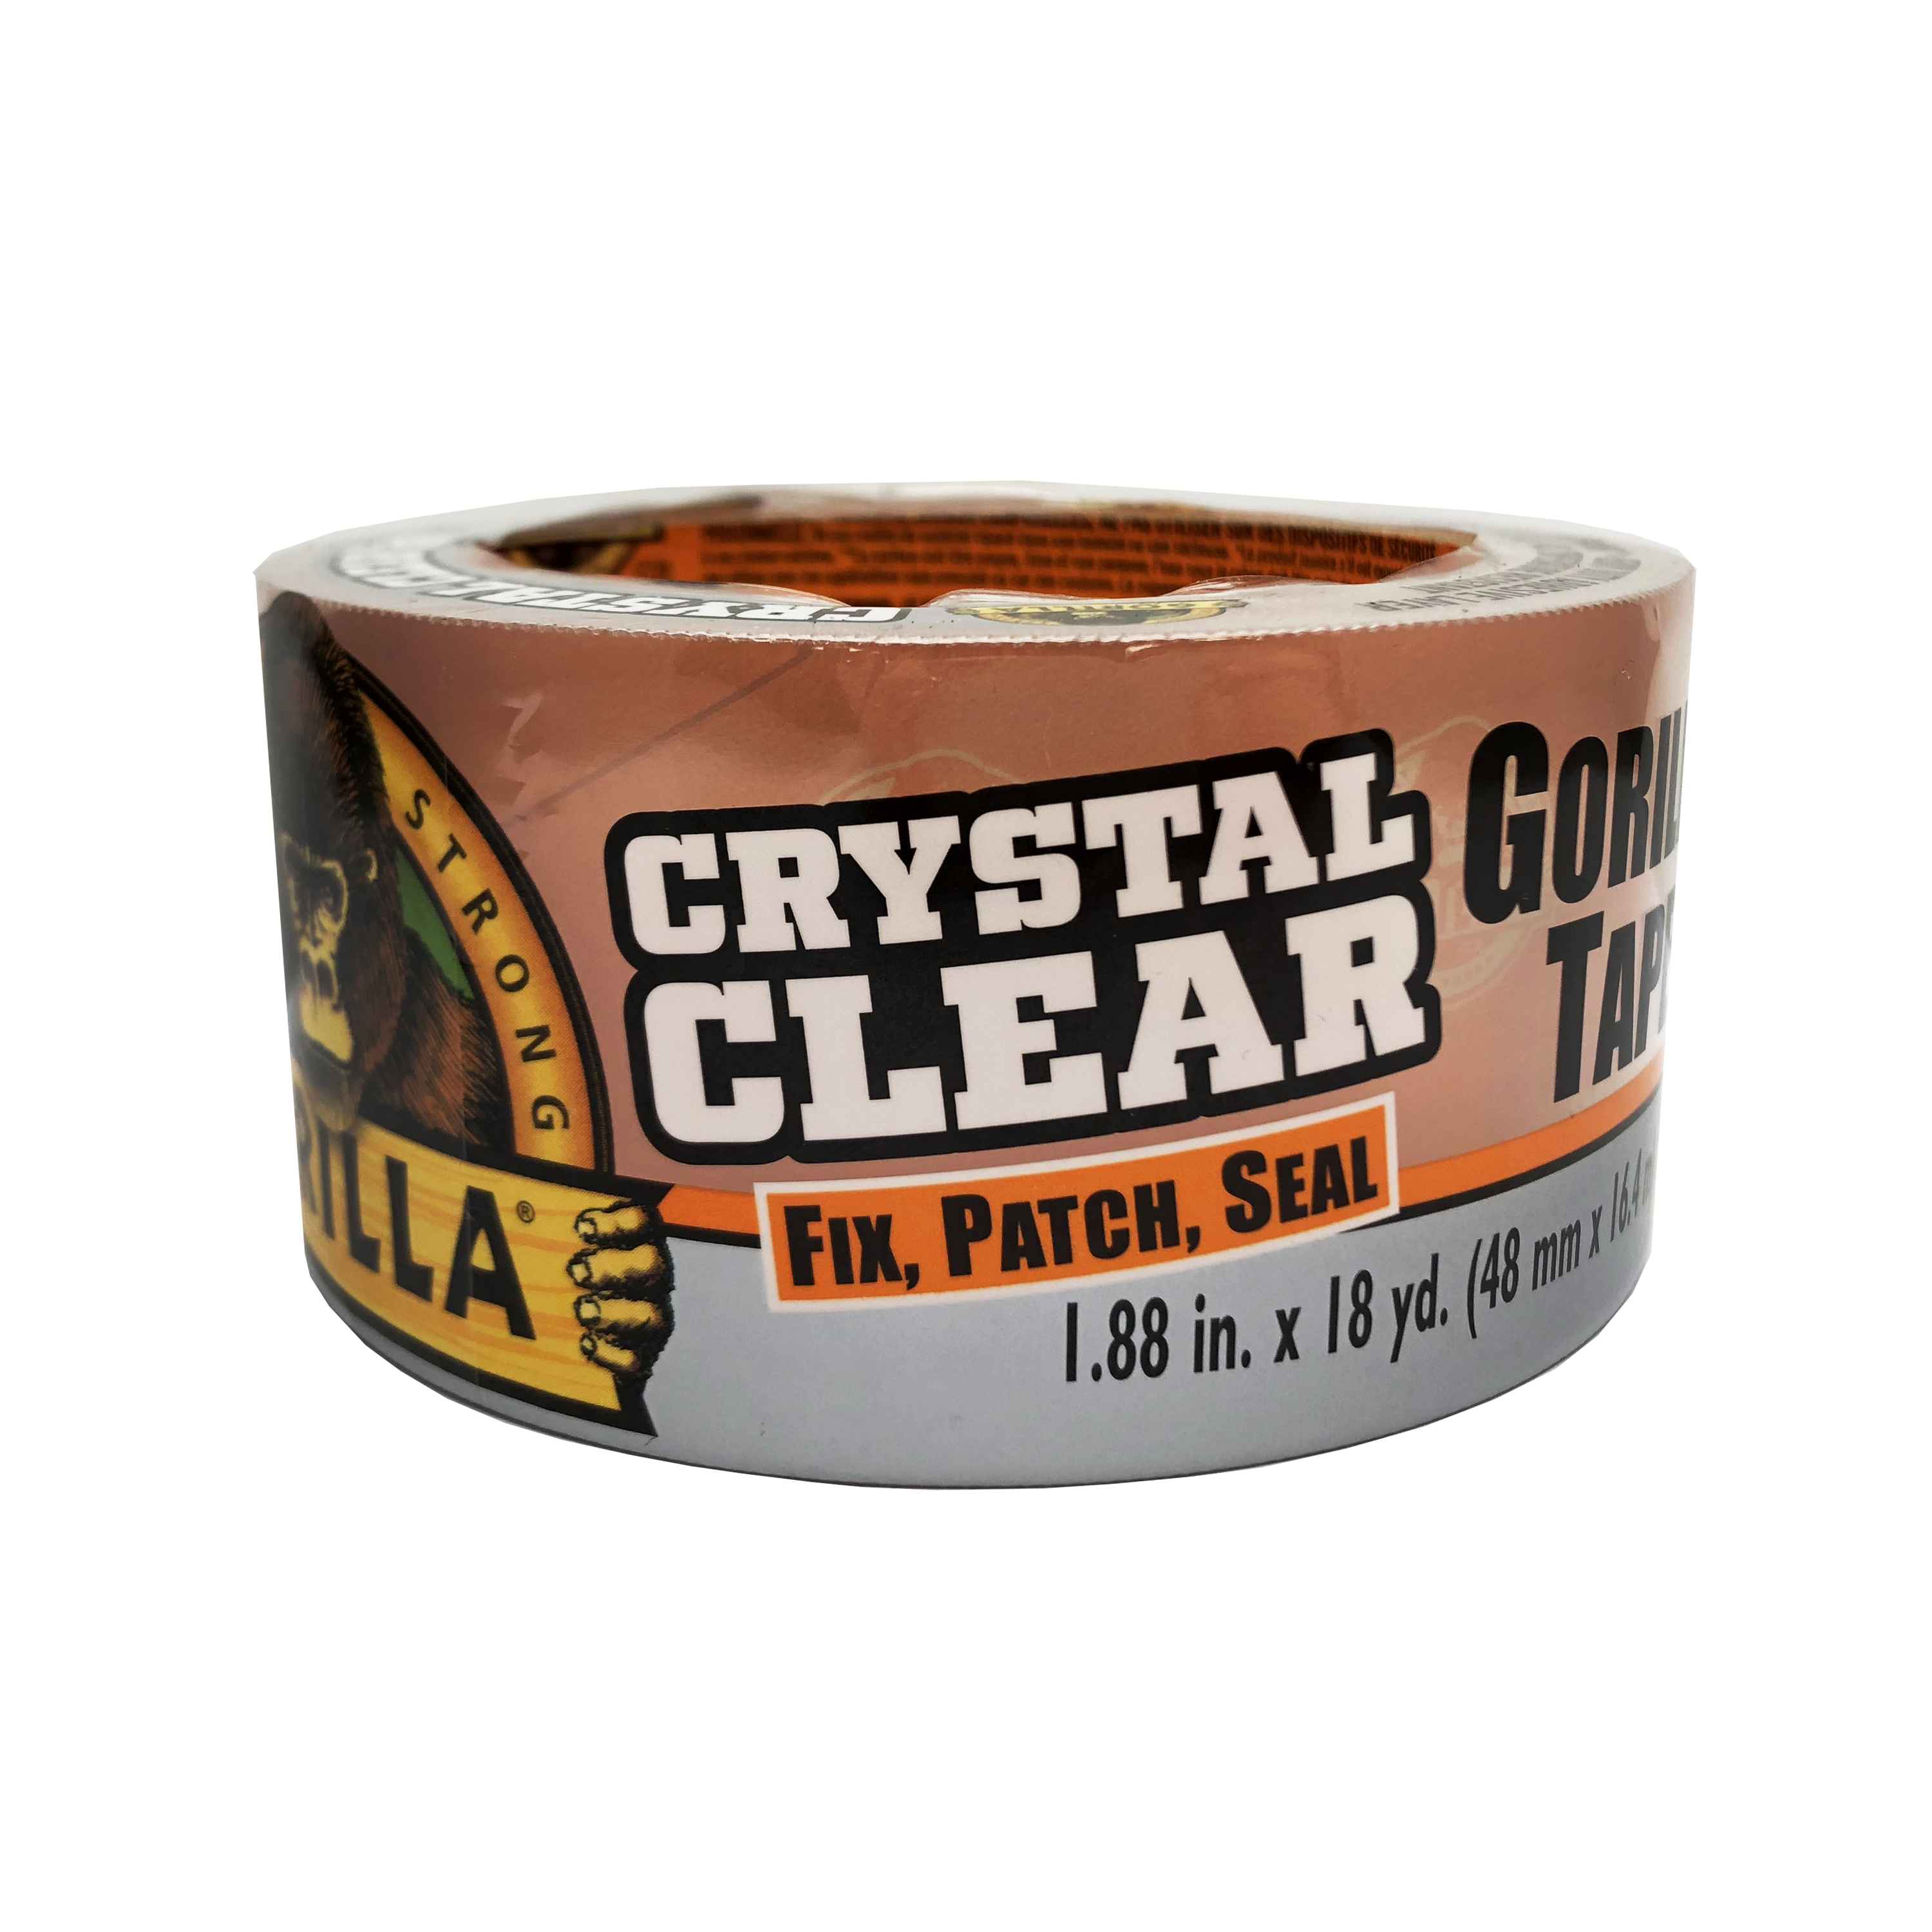 Gorilla Crystal Clear Tape 18yd